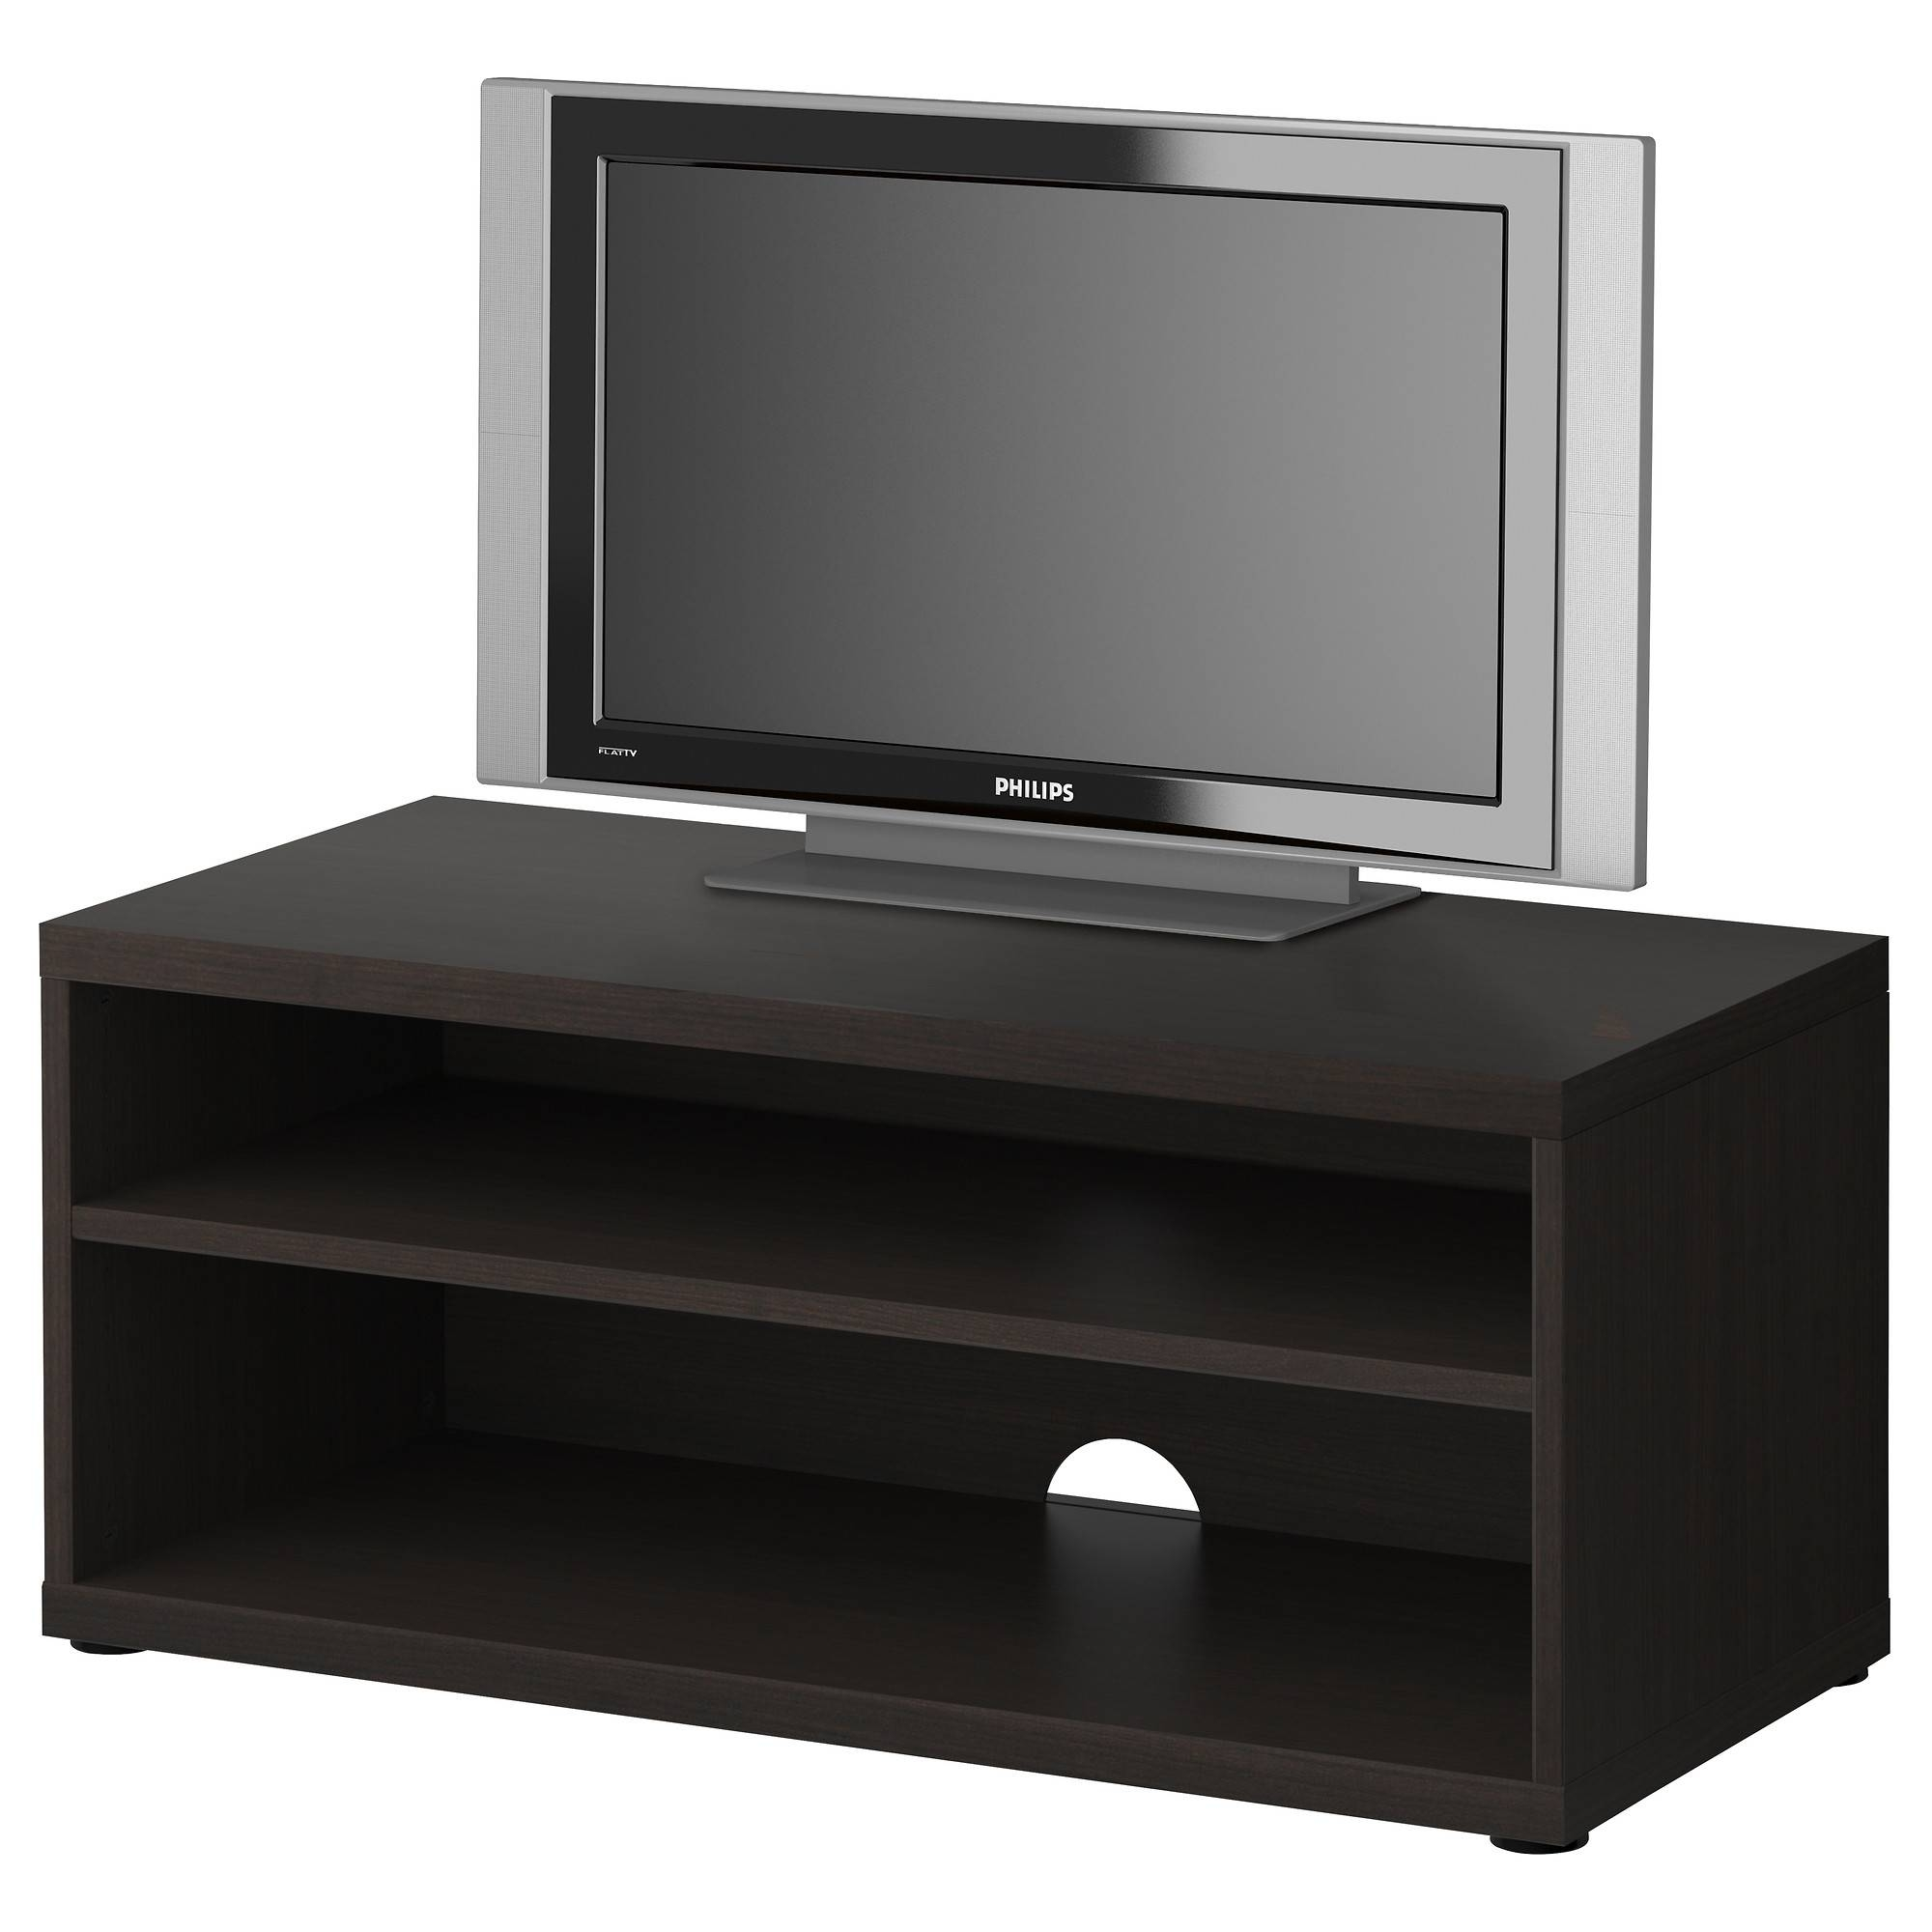 Tv Media Furniture – Tv Stands, Cabinets & Media Storage - Ikea inside Black Tv Cabinets With Drawers (Image 12 of 15)